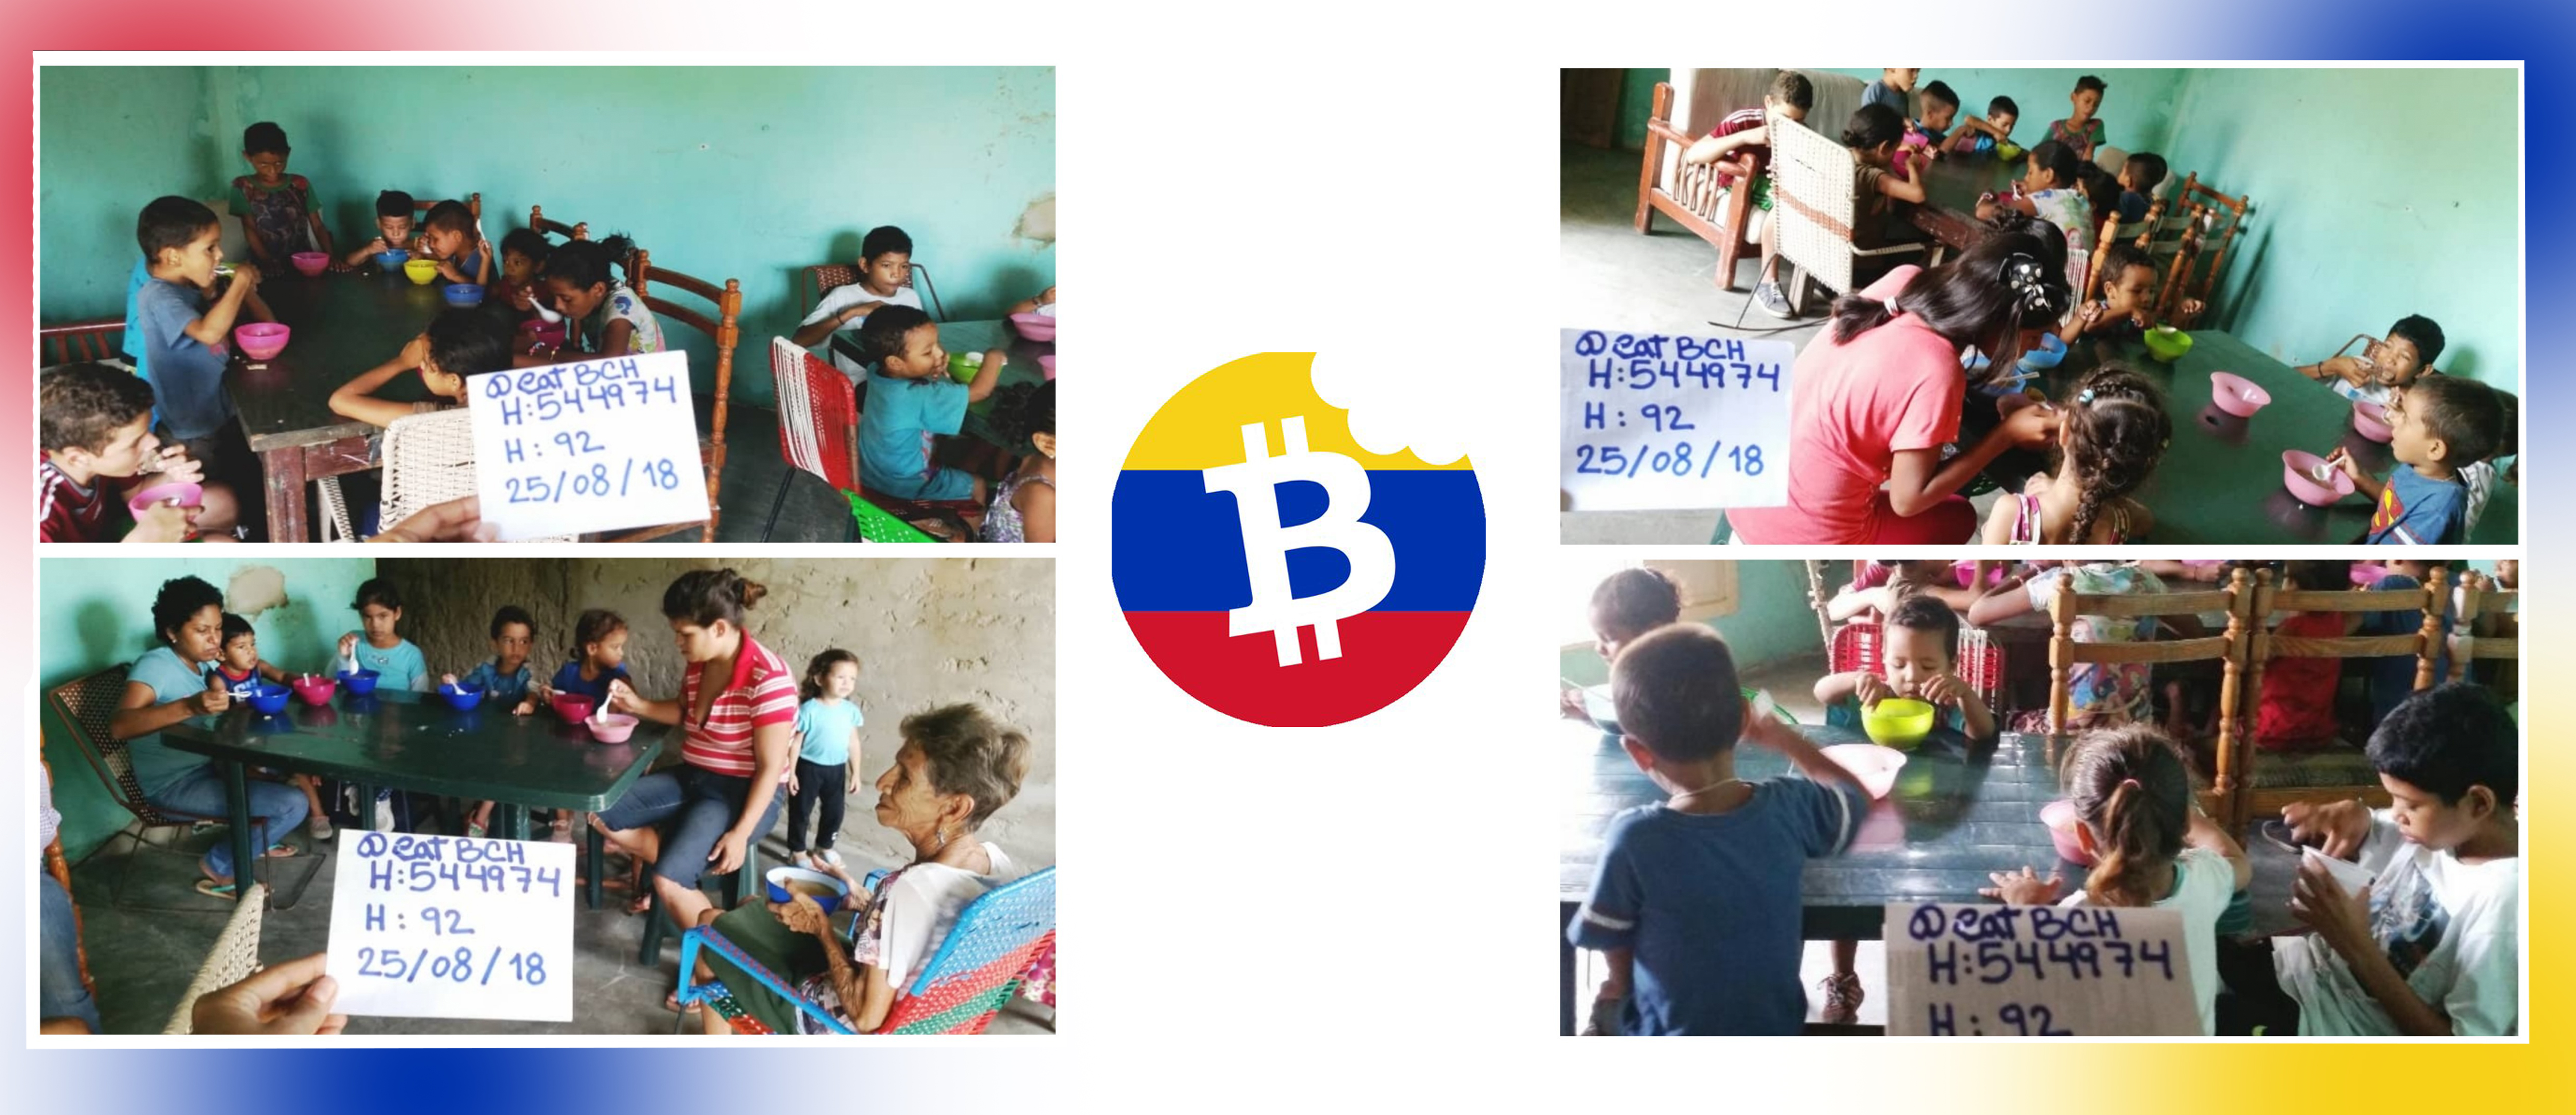 Nonprofit Eatbch Shows How Every Little Microtransaction Helps